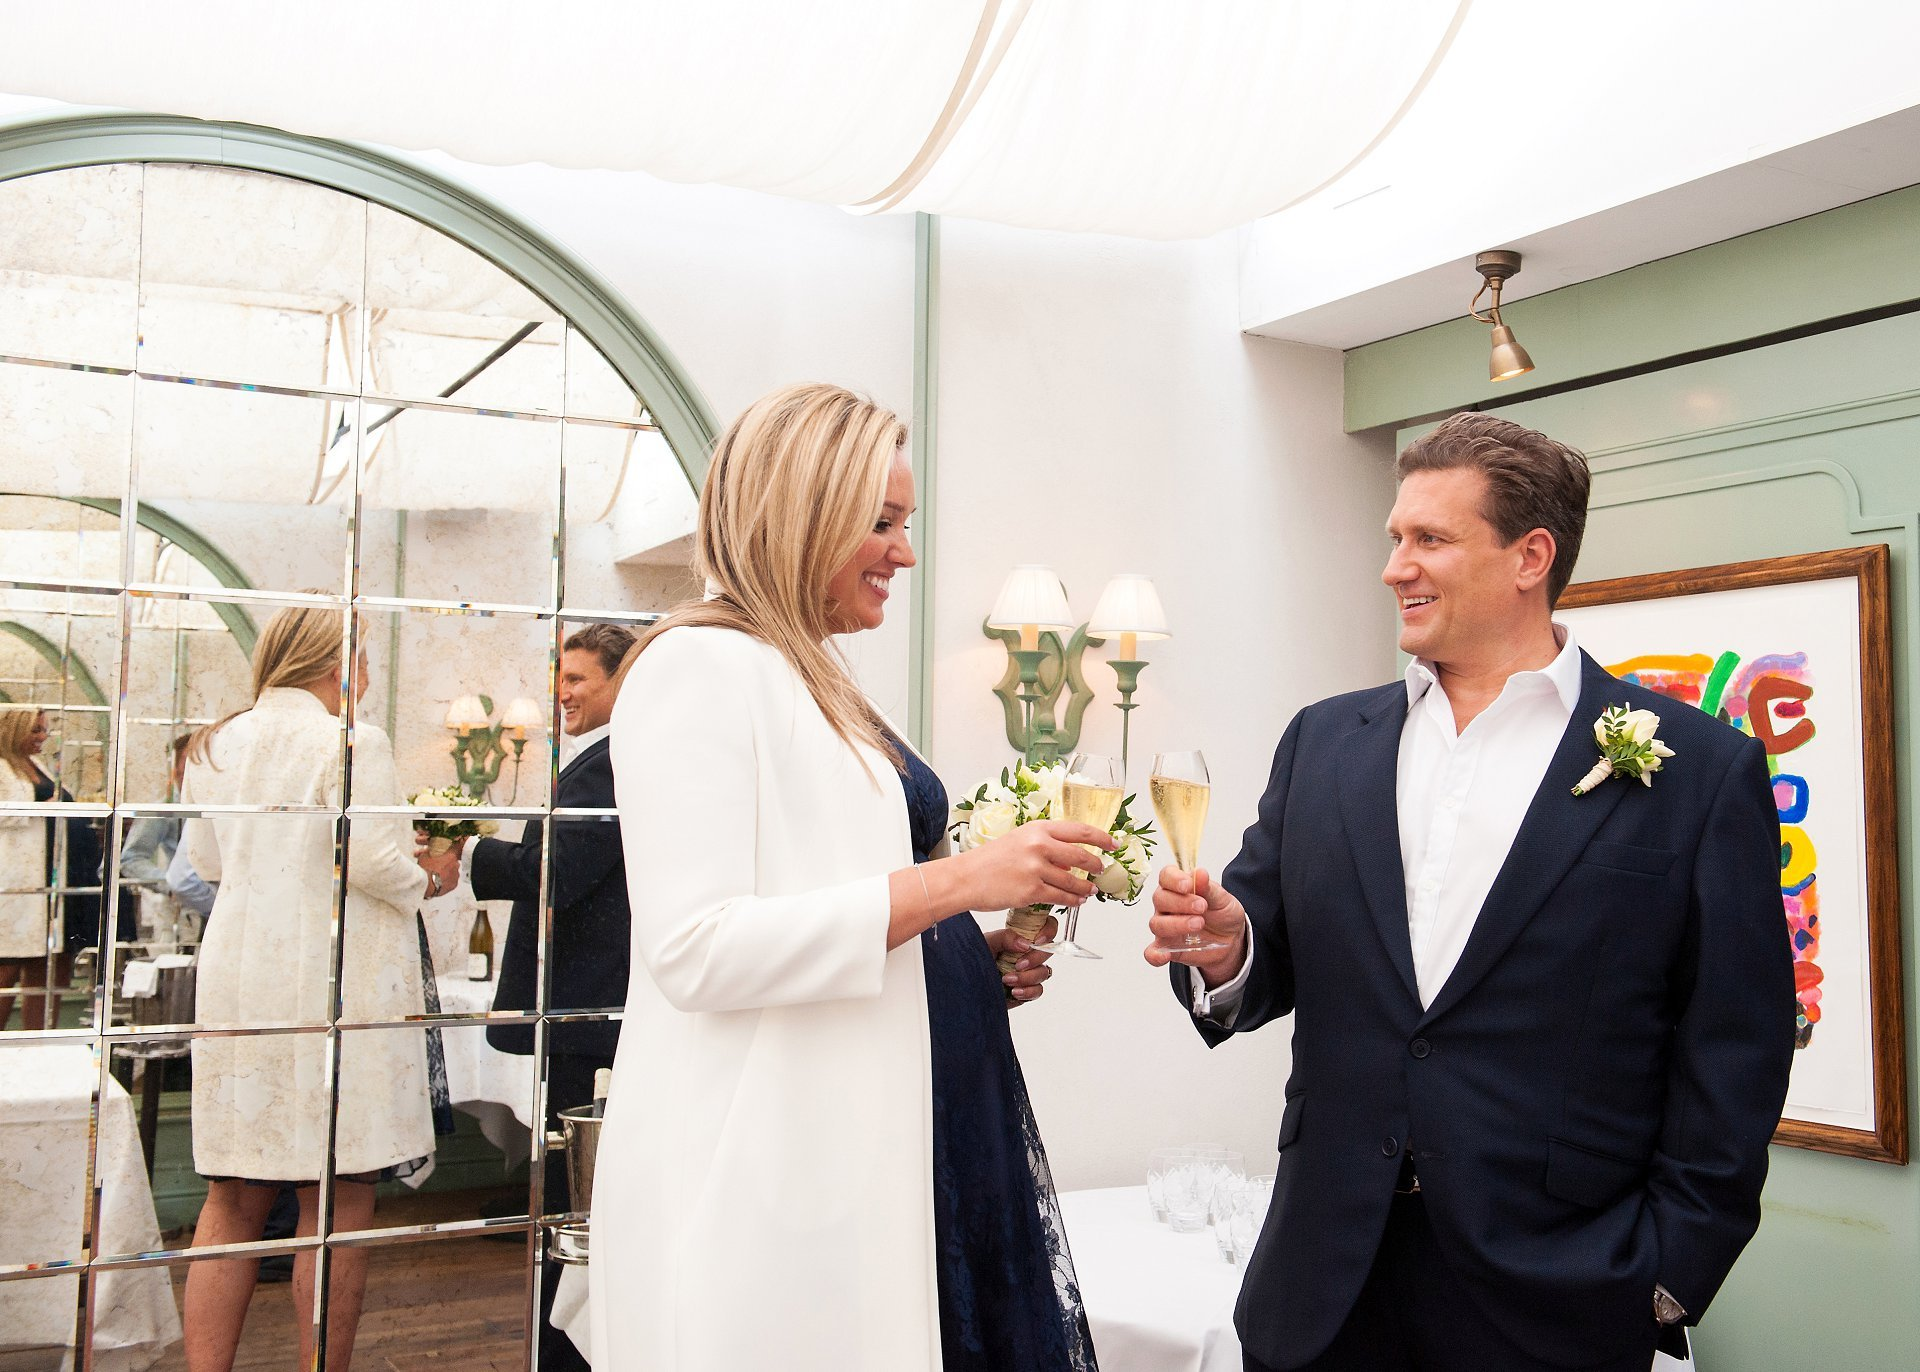 Julian and Emily toast their marriage with a glass of champagne